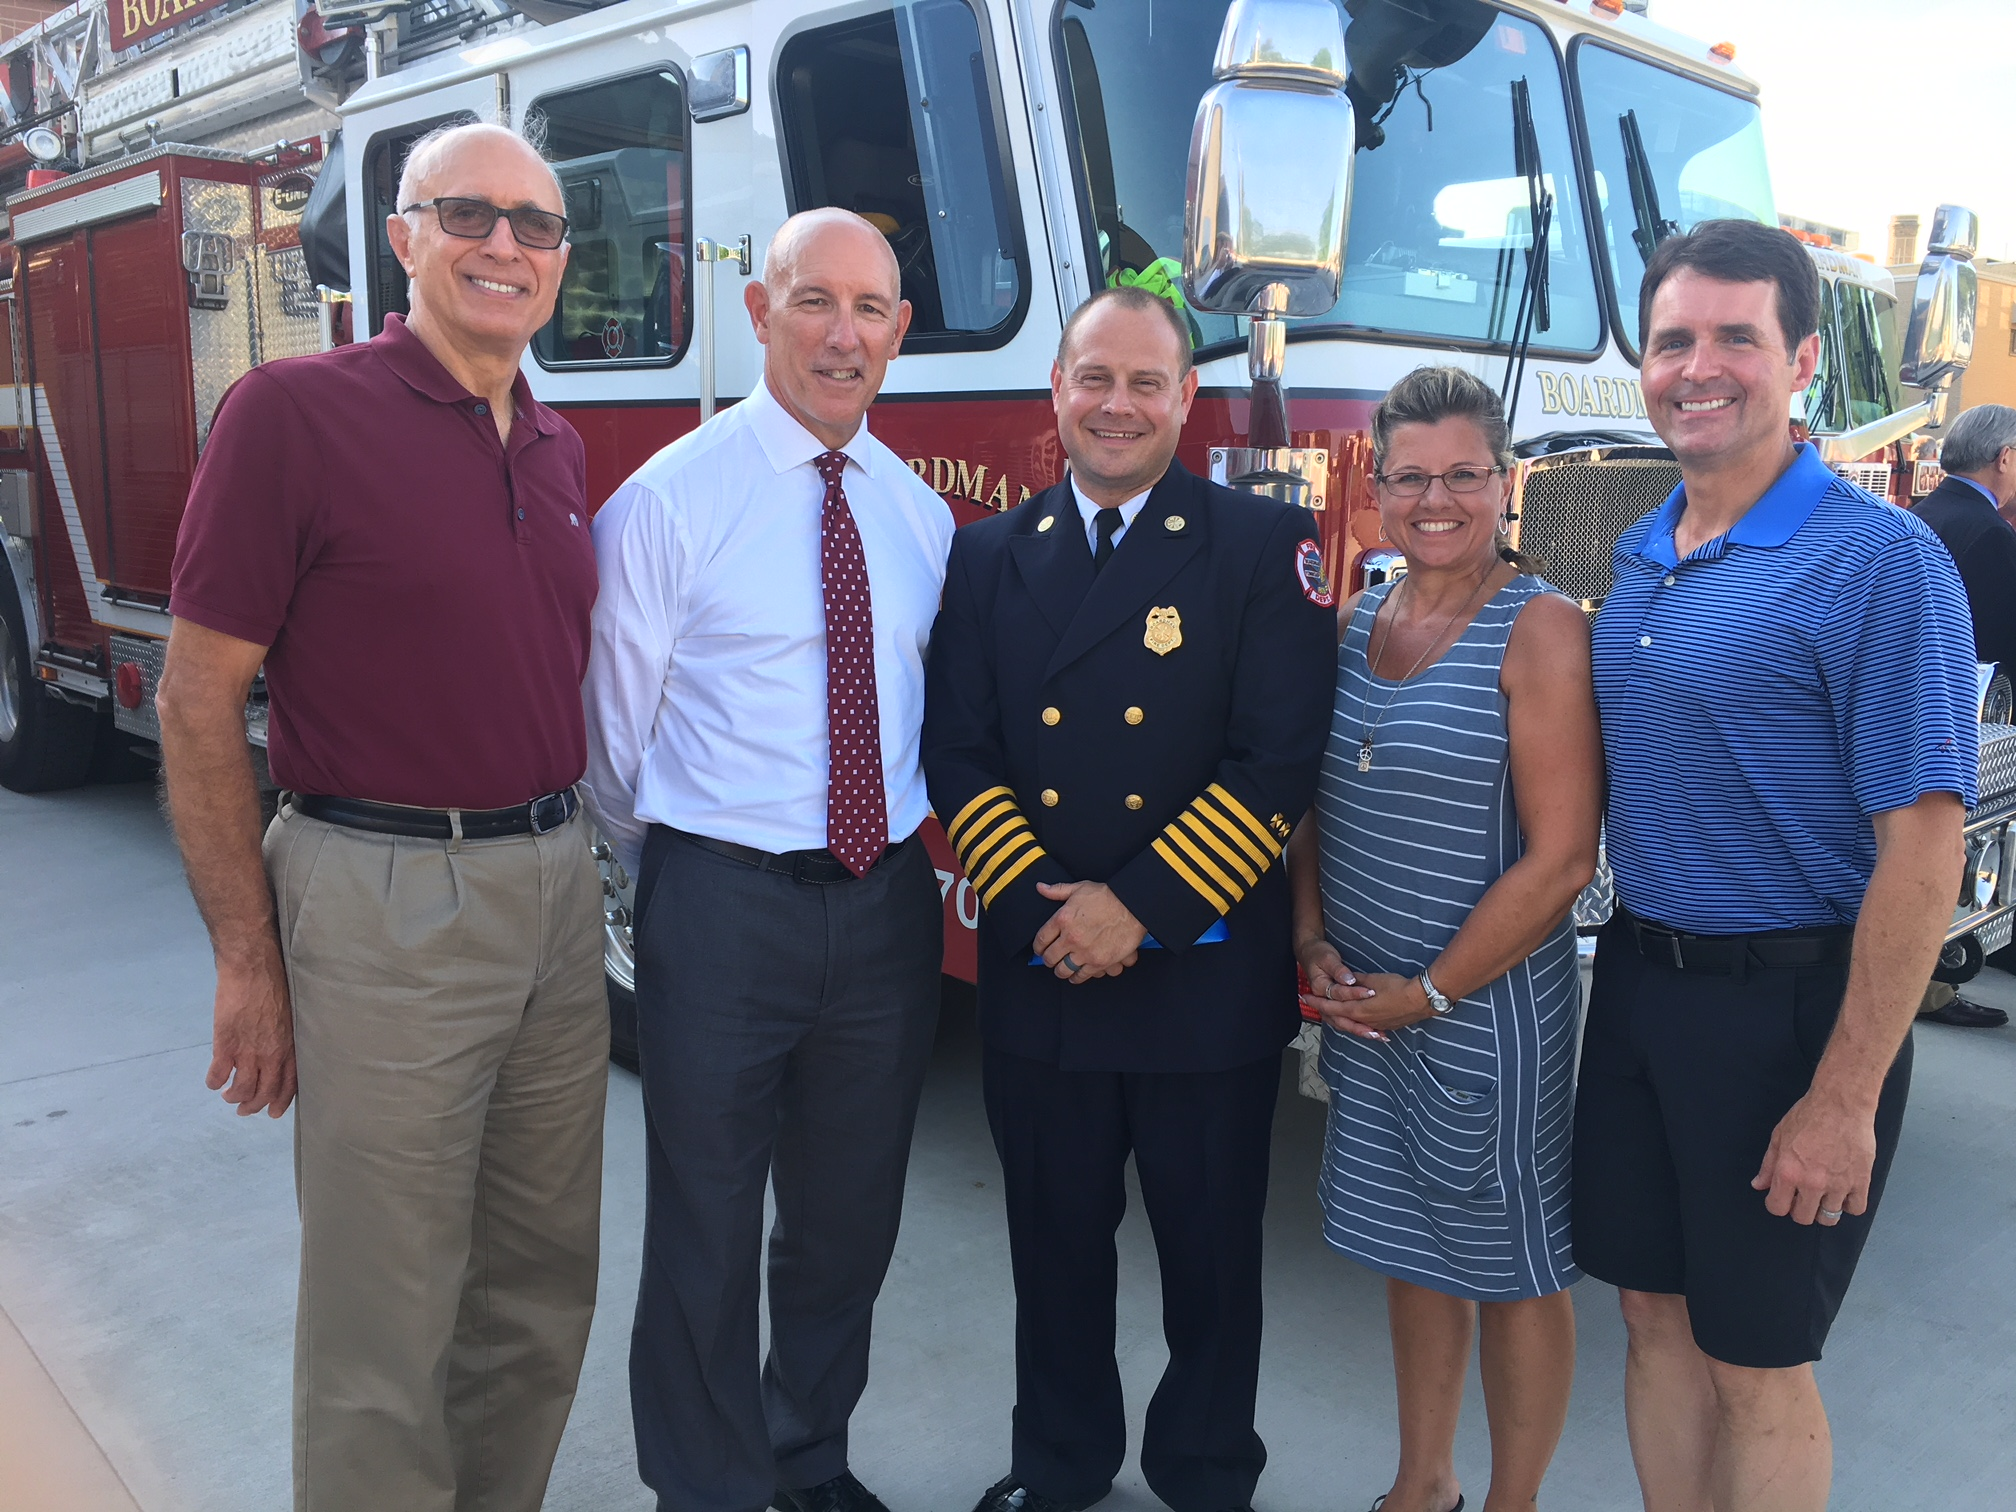 Frank Lazzeri, Tim Saxton, Chief Mark Pitzer, Vickie Davis, Jeff Barone